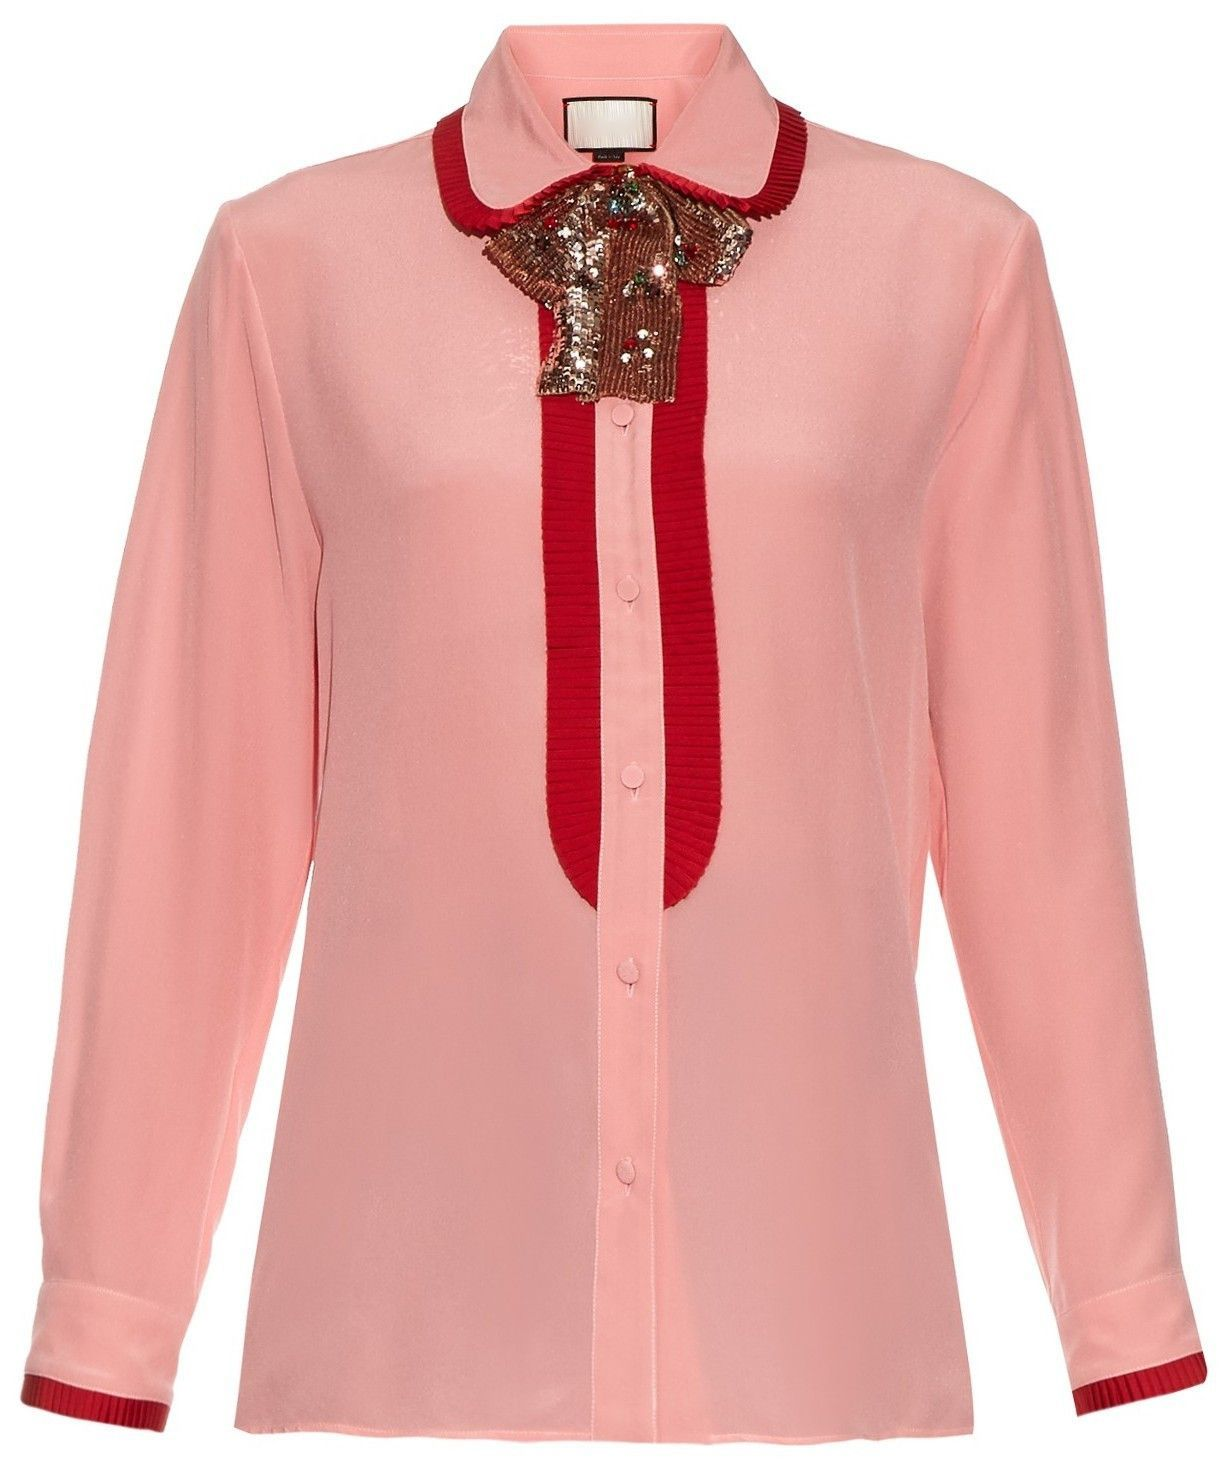 60fe69f14e5 Sequin Neck-Bow Silk Ruffle Oxford Shirt-Pink in 2019 | Pop ...